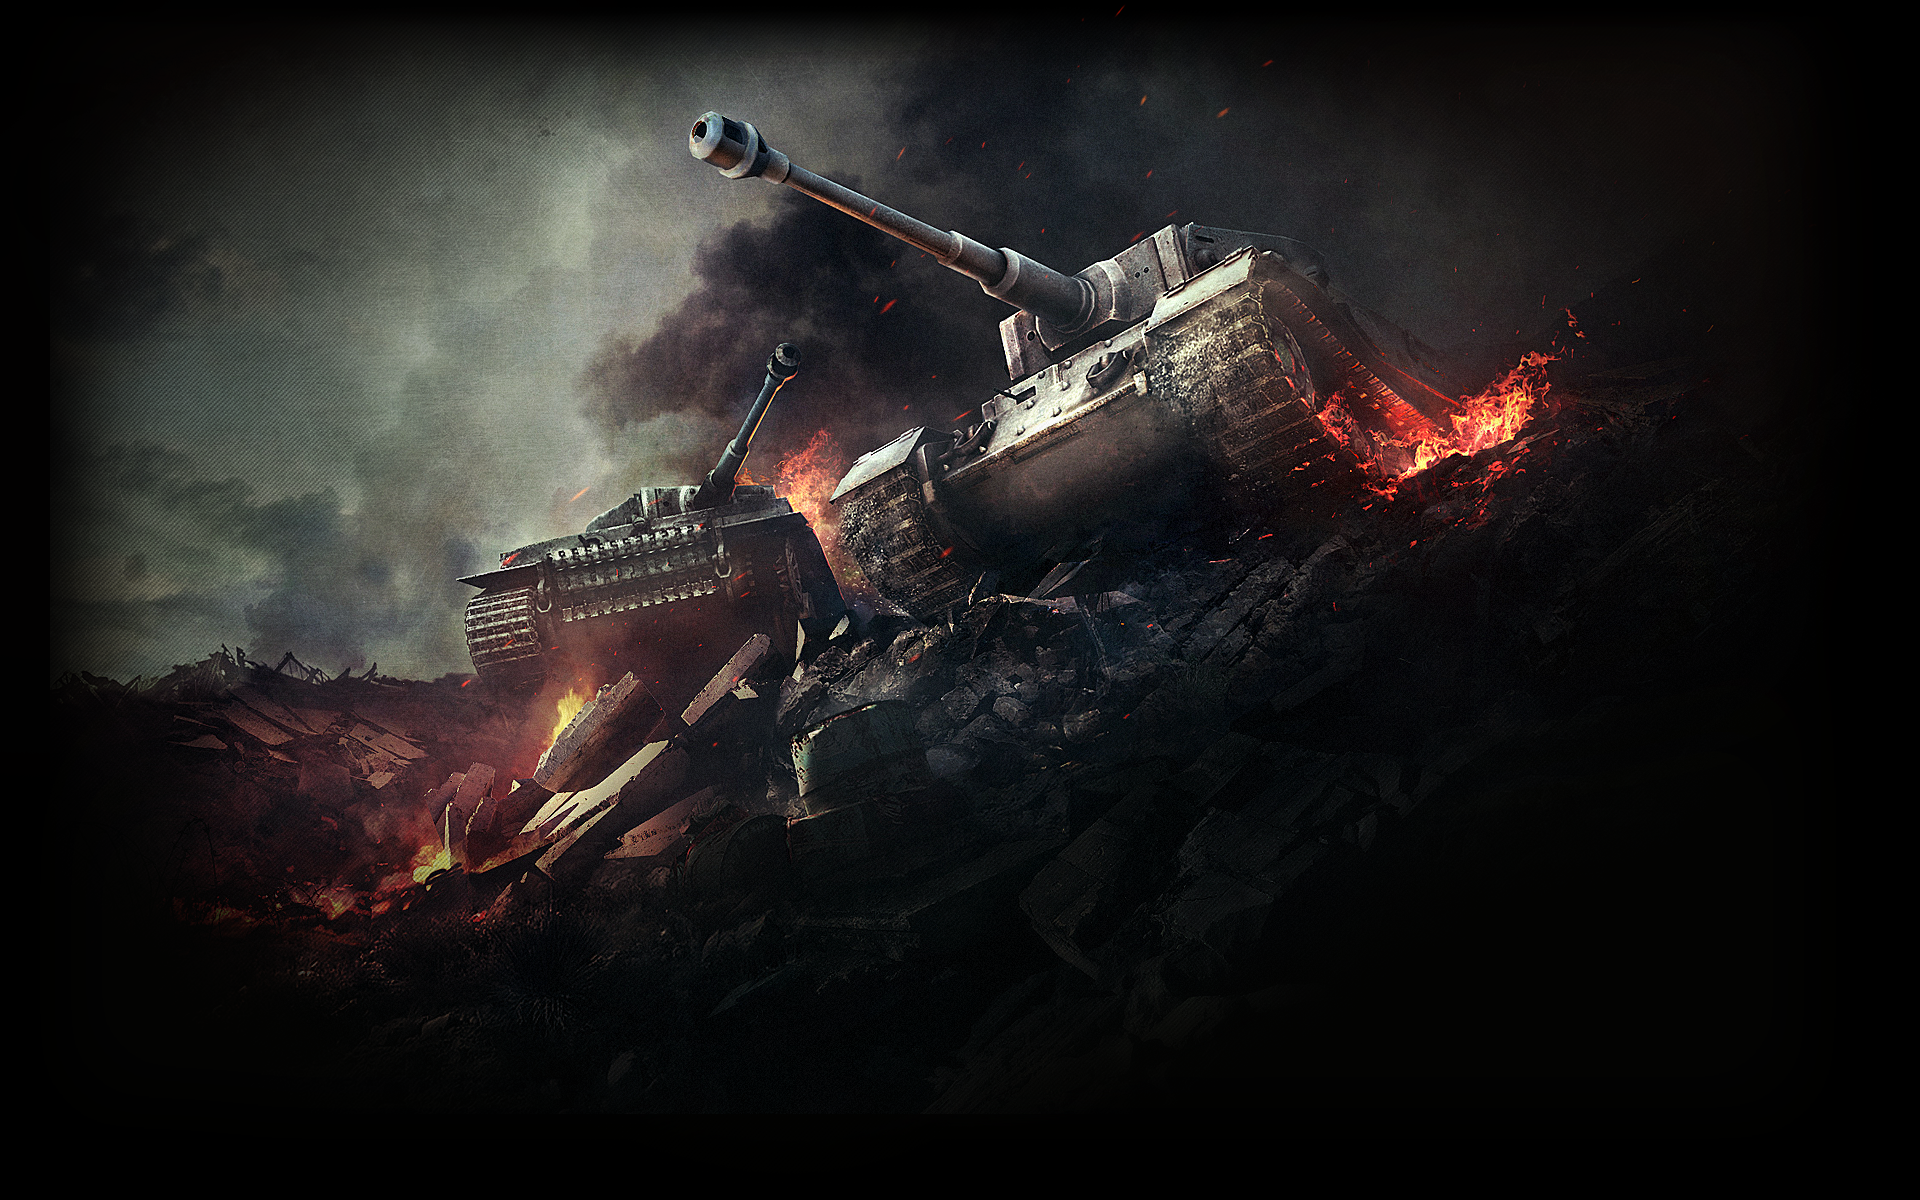 World of tanks hd wallpapers 2015 all hd wallpapers for Home 2015 wallpaper hd